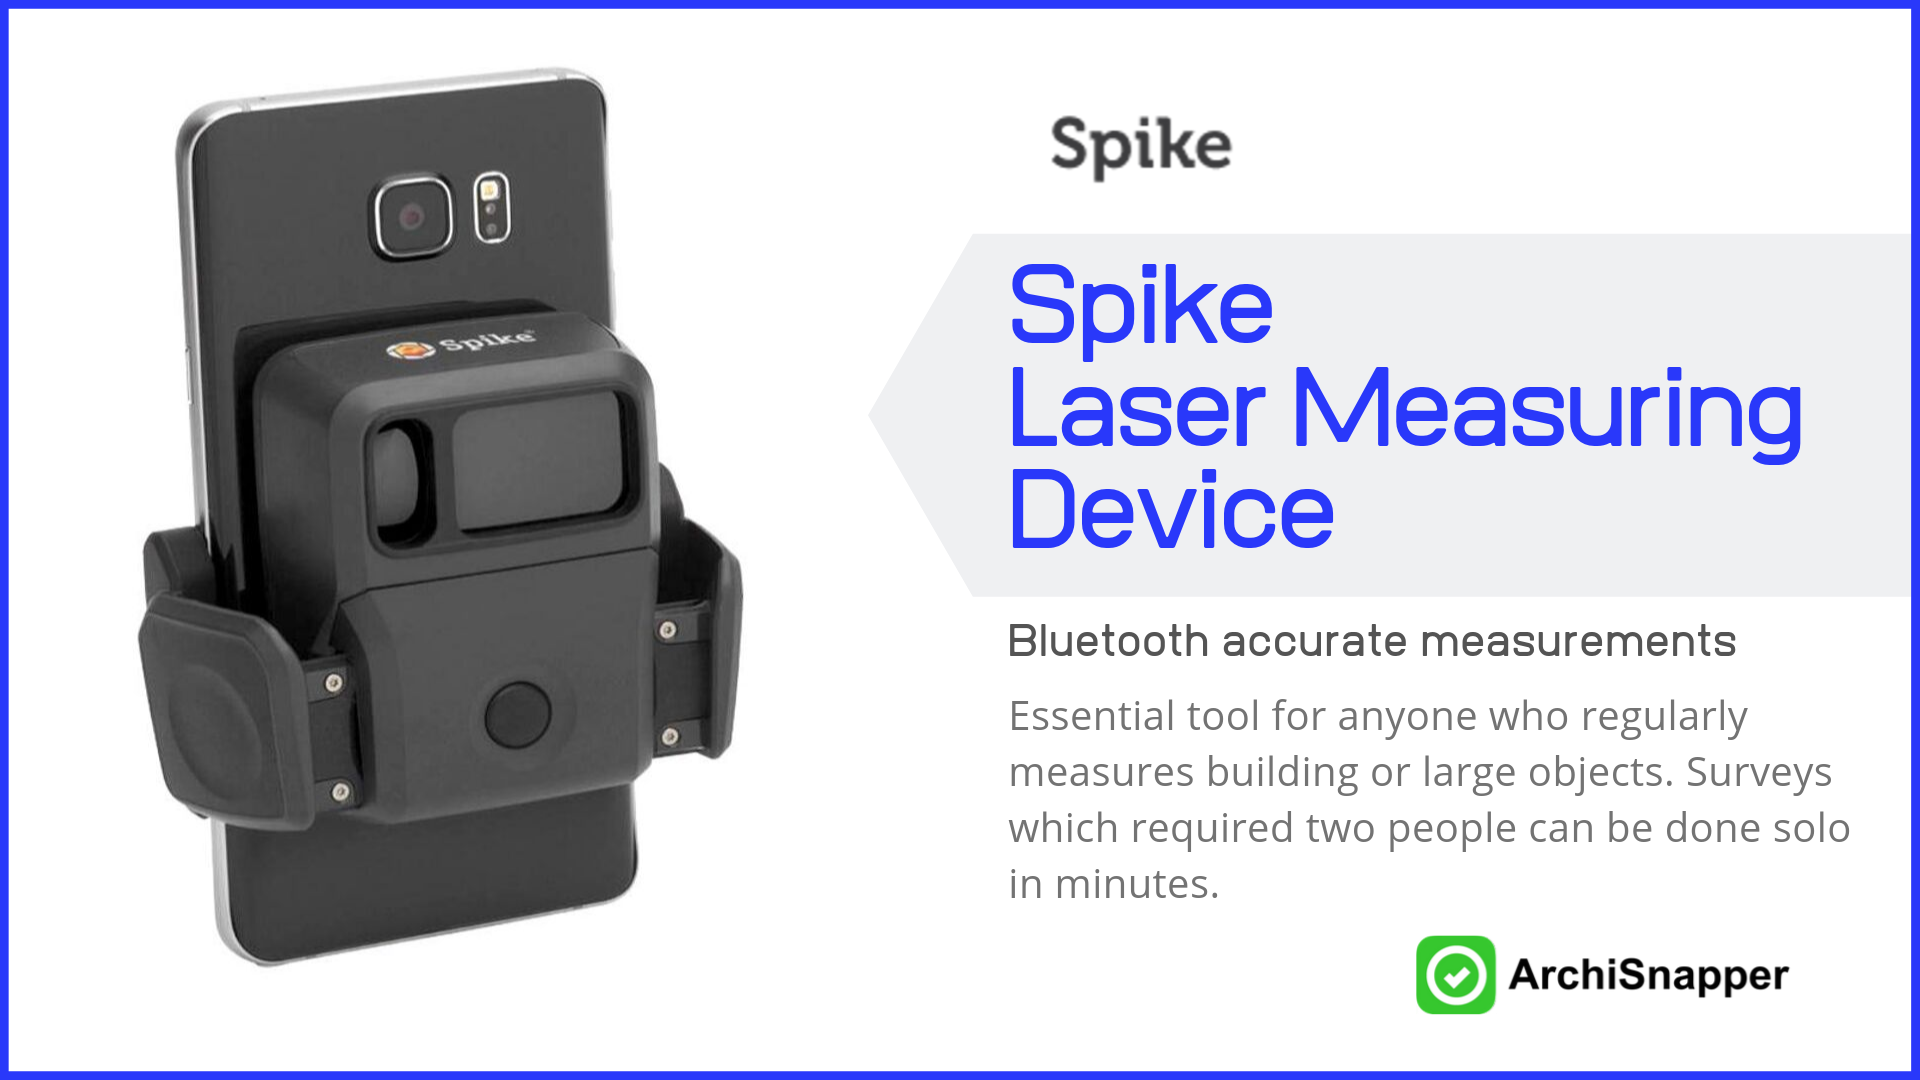 Spike Laser Measuring Device| List of the 14 must-have tech tools and accessories ideal for architects